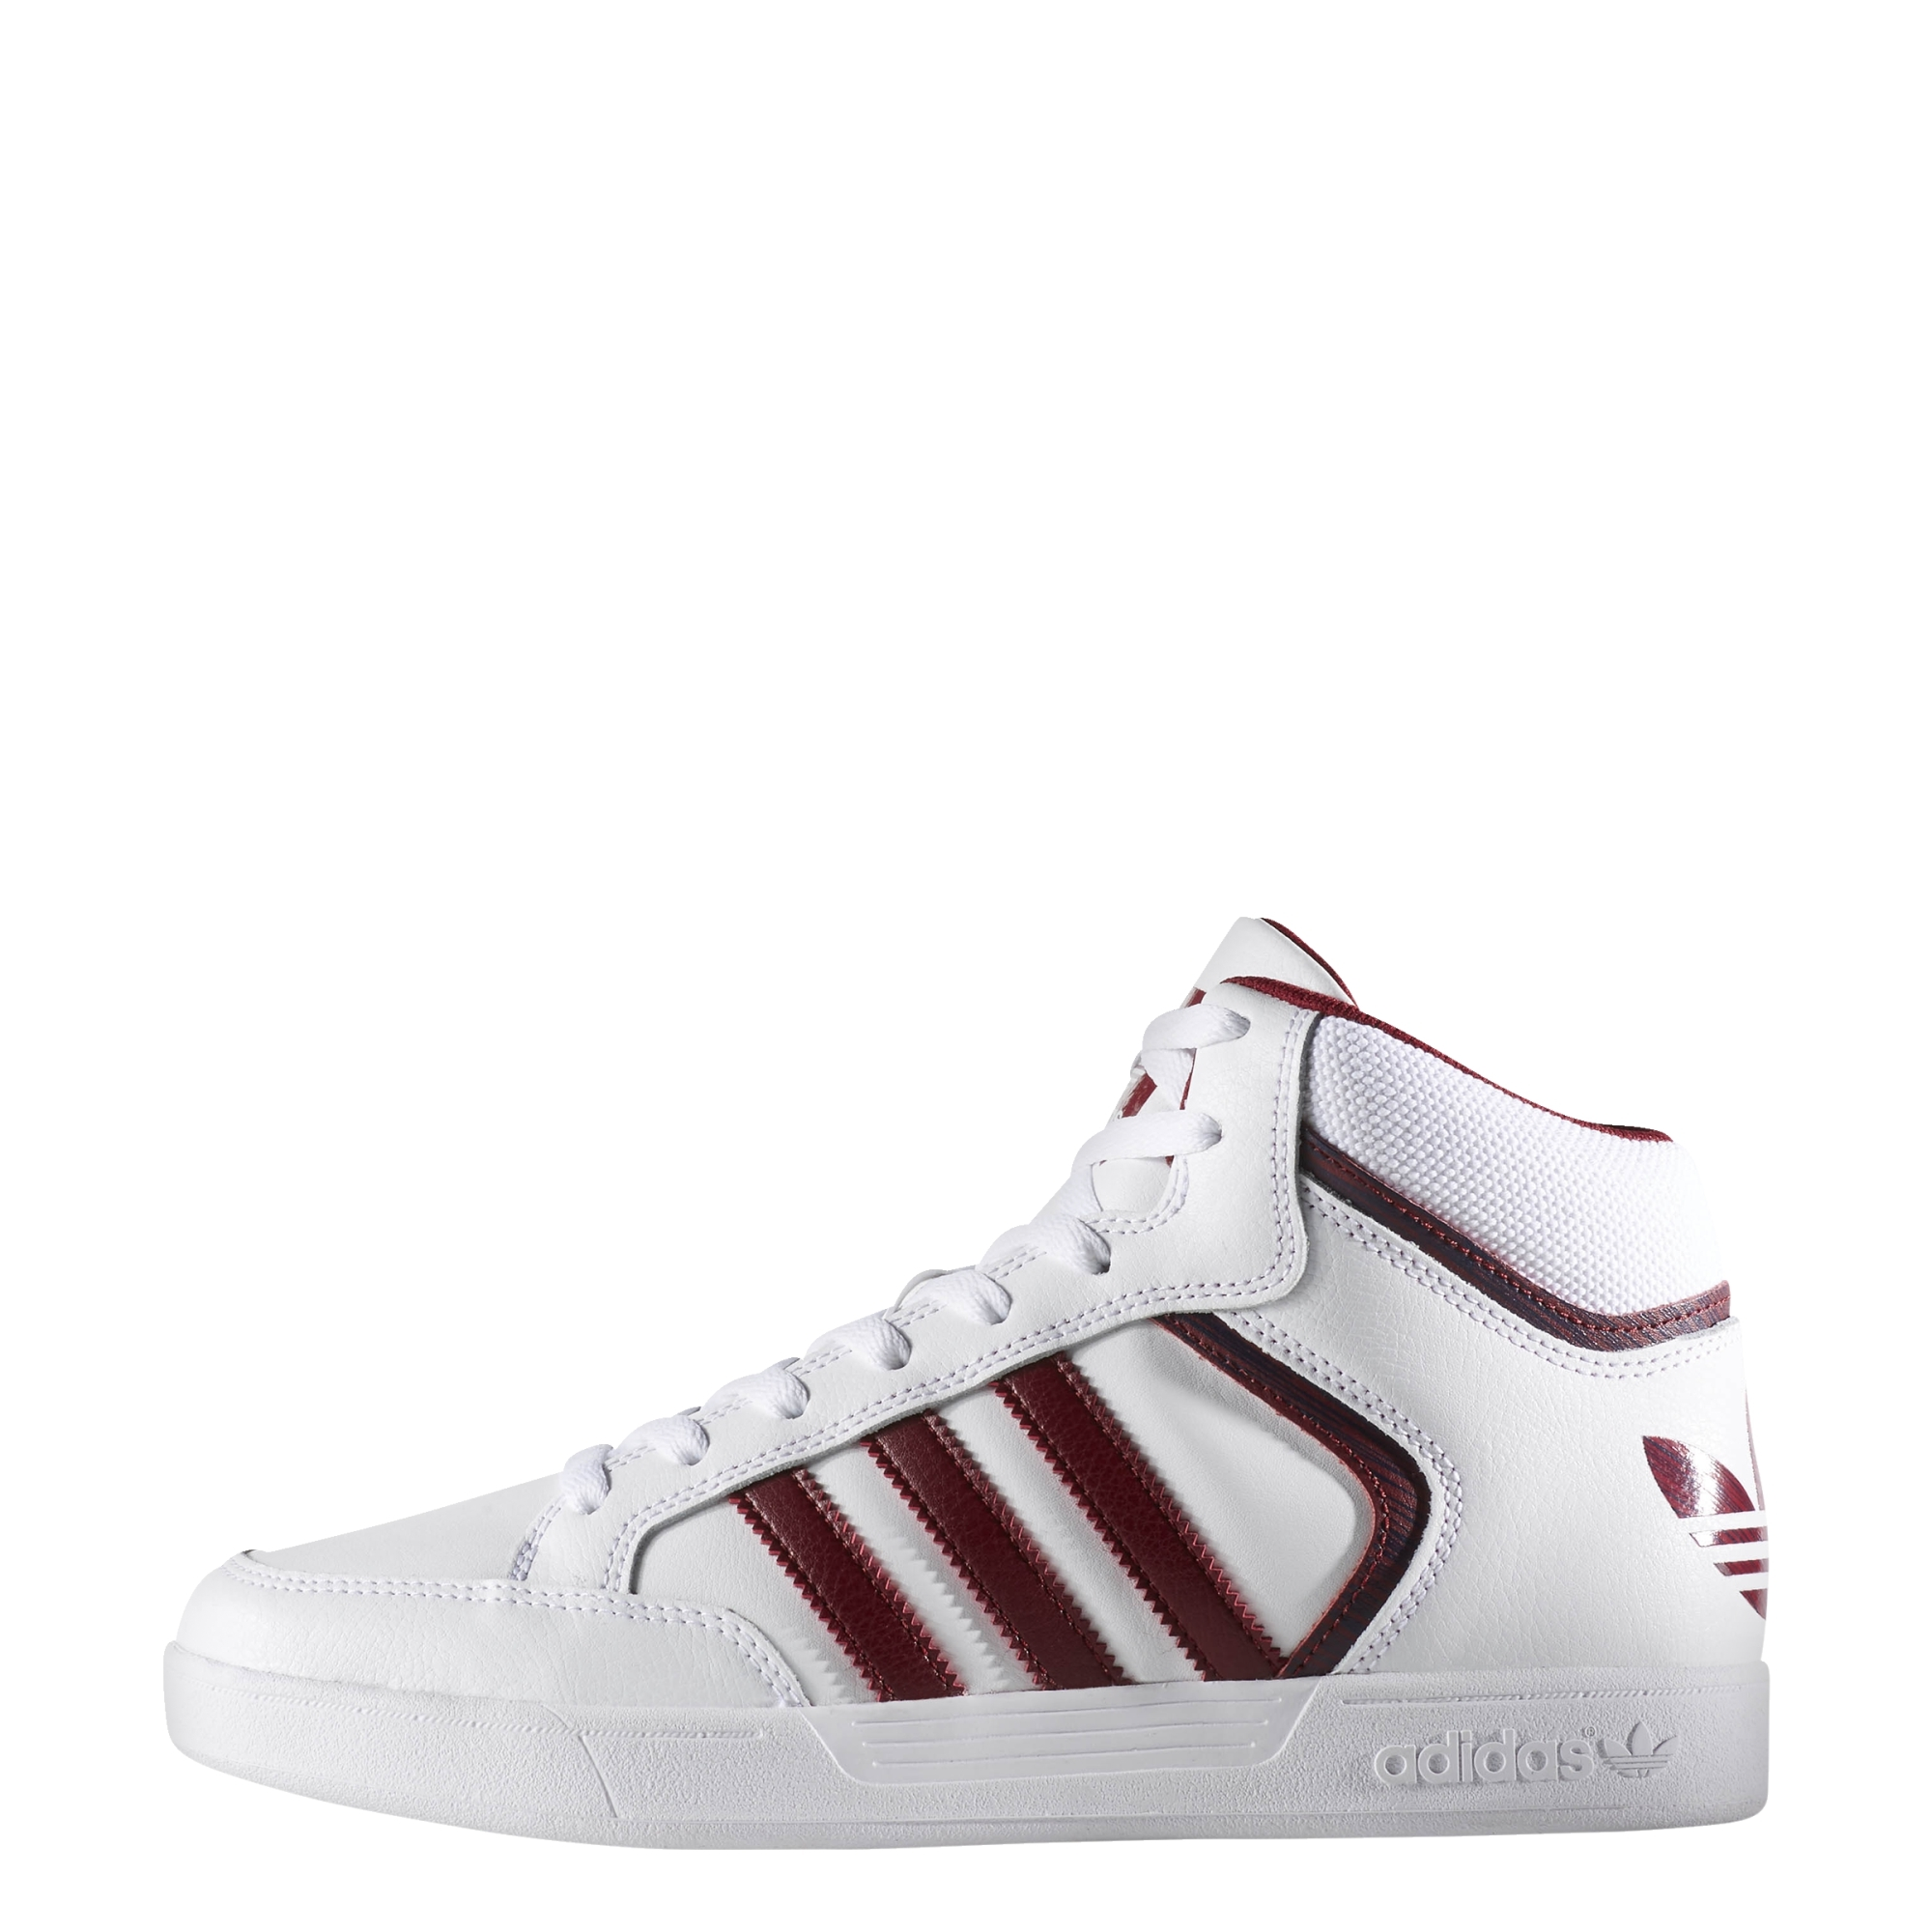 meet a1cb9 a95f8 ... buty adidas Varial Mid BY4060 ...